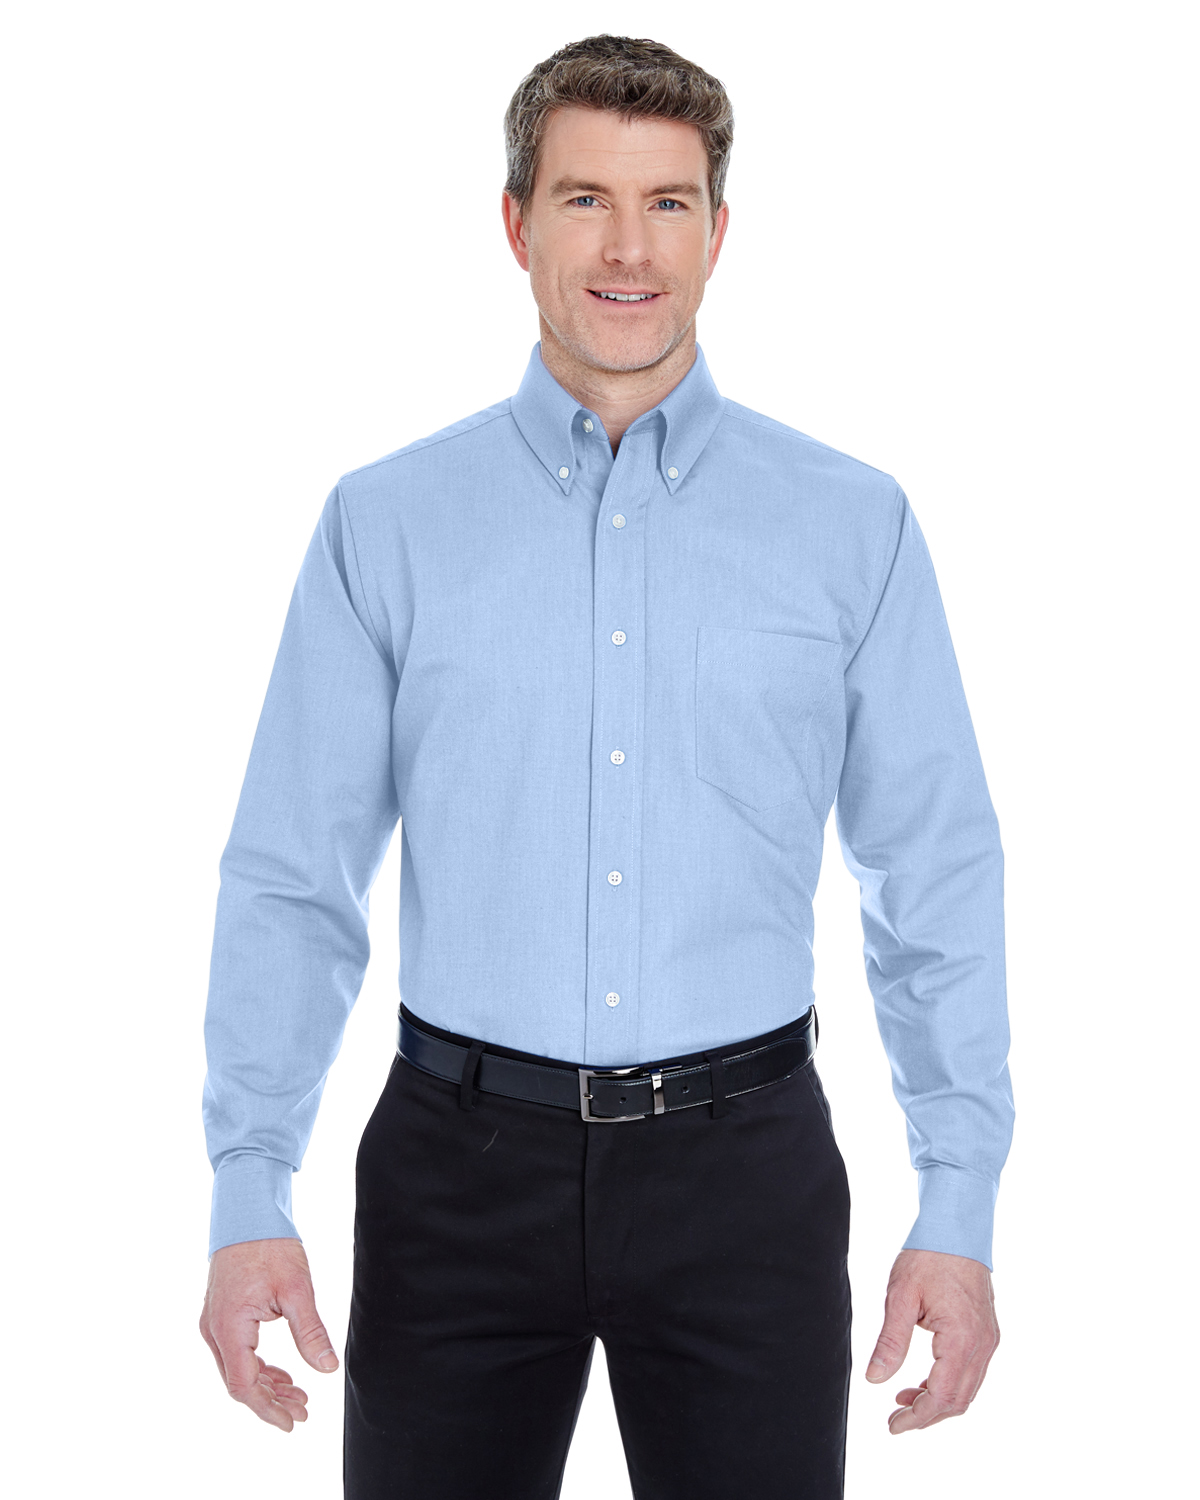 Ultra Club 8970T - Men's Tall Classic Wrinkle-Free Long-Sleeve Oxford